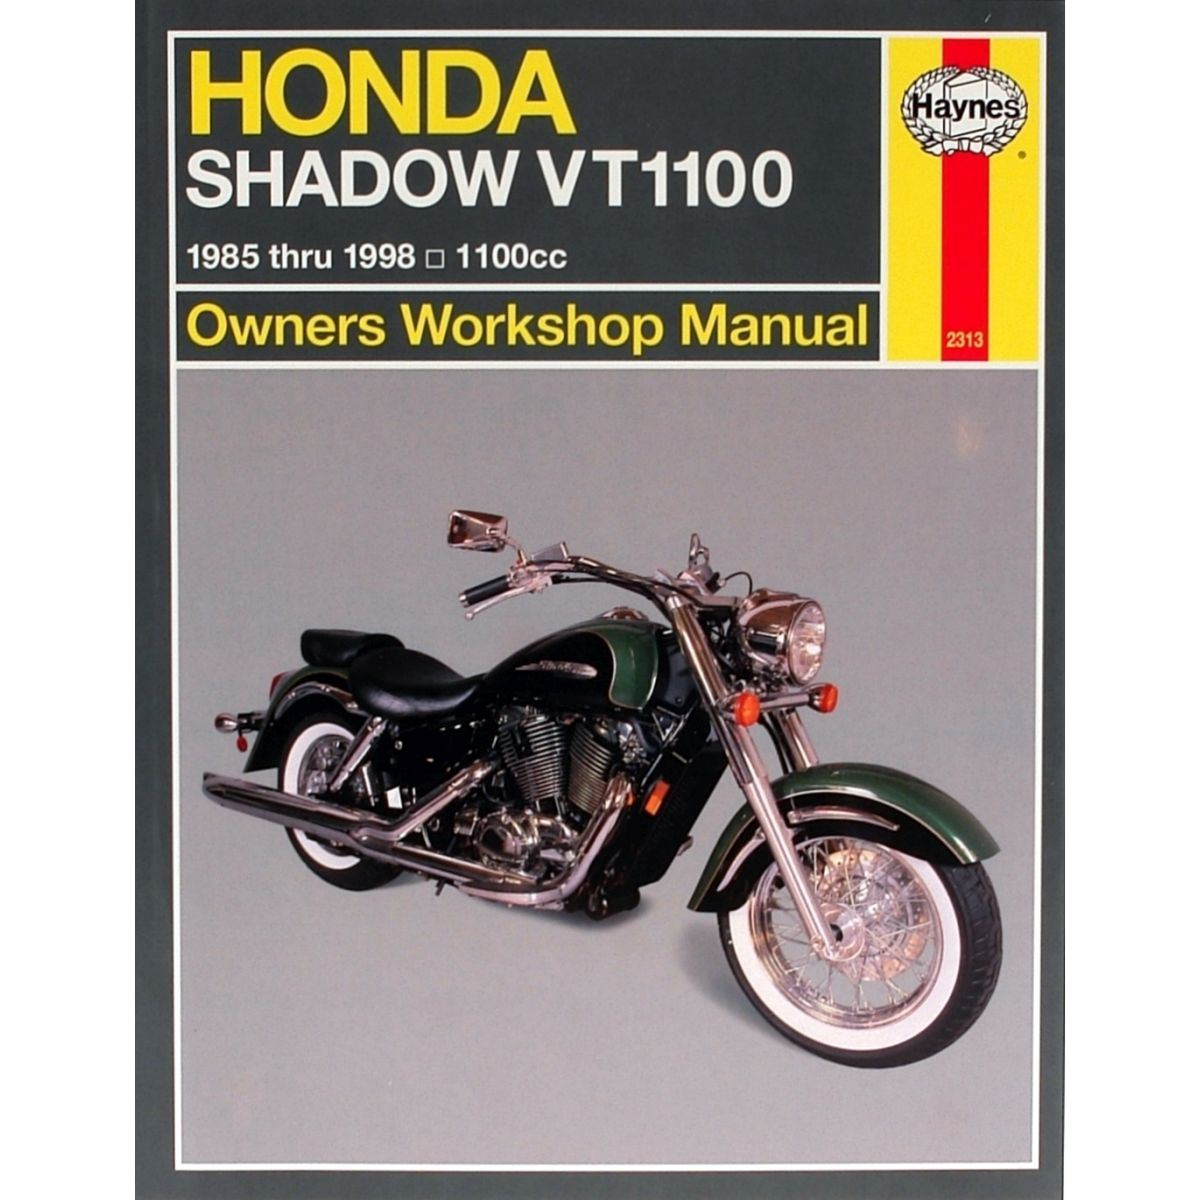 Manual Haynes For 1999 Honda Vt 1100 C2 X Shadow Sabre Ebay